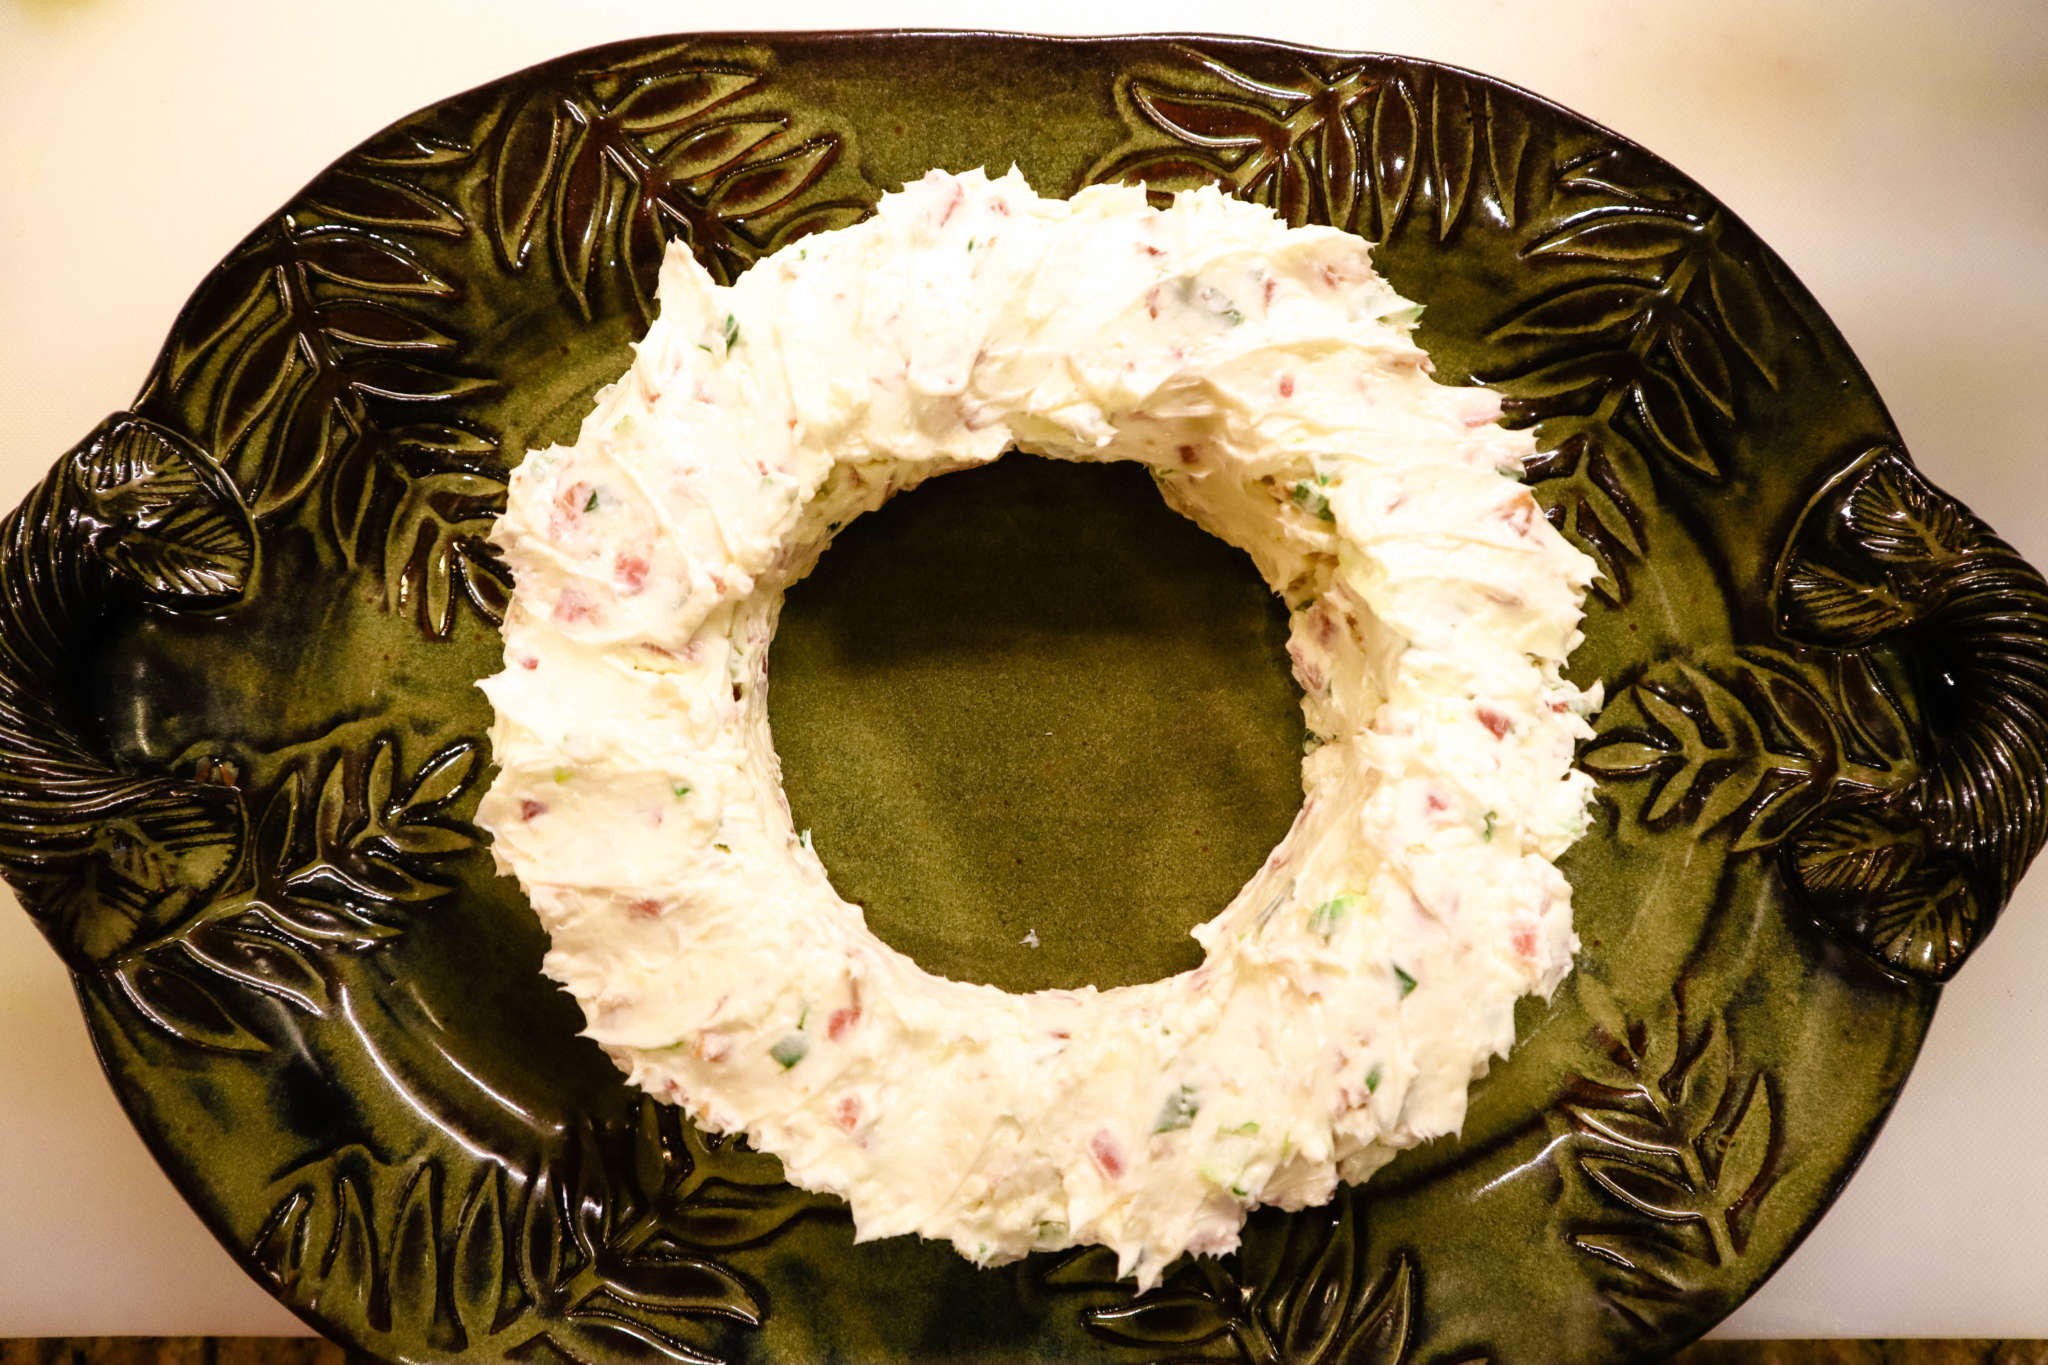 A close up of a Bacon and Cheese dip in shape of Wreath